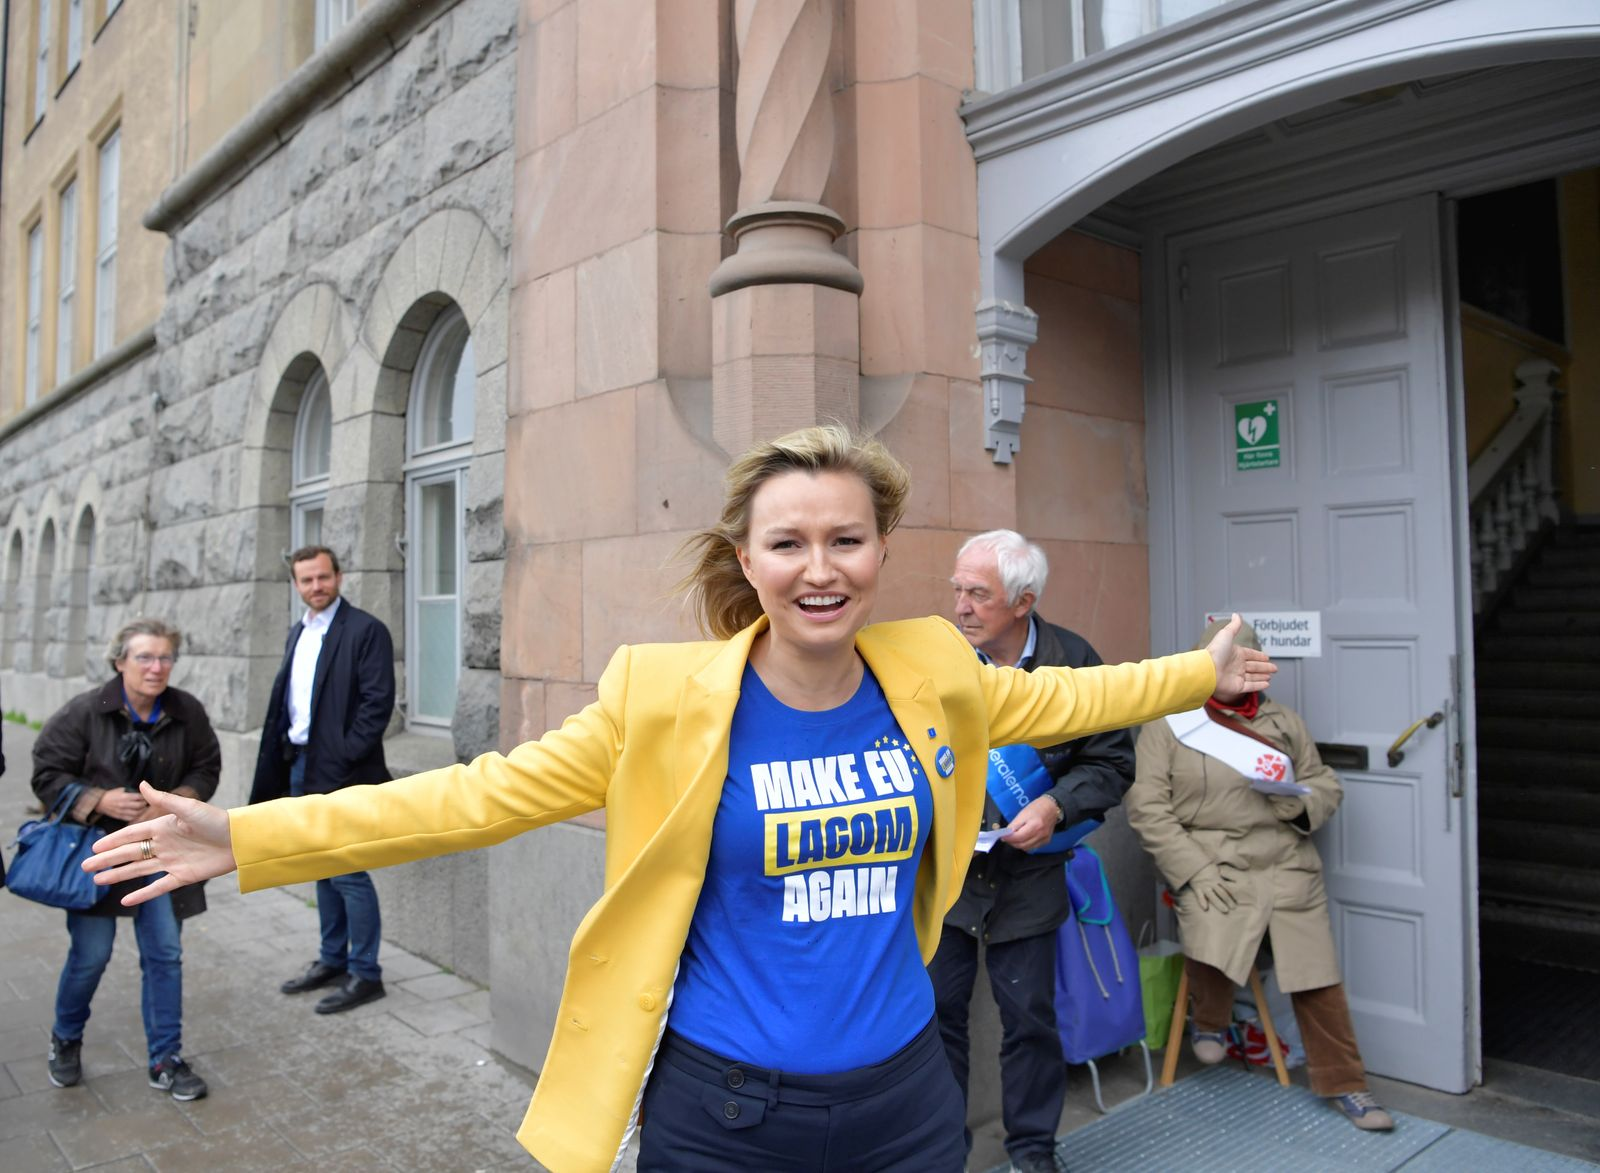 Ebba Busch Thor, Party leader of Sweden's Christian Democrats, distributes candidates lists for the European Parliament elections at a polling station in a school in Stockholm